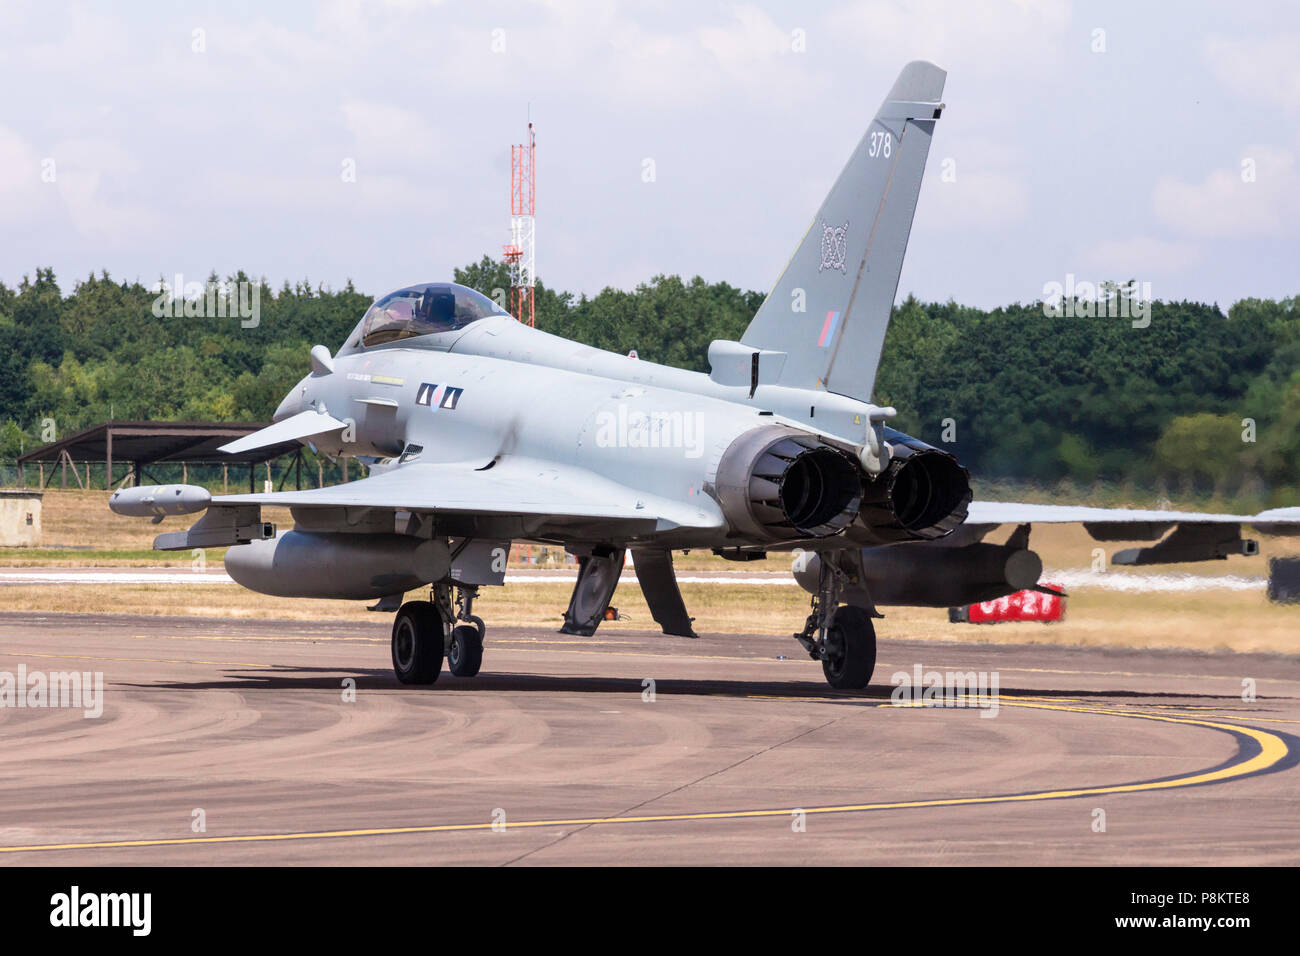 12th July 2018. Aircraft arrive for the 2018 air show which takes place over 3 days (13th to the 15th July). Invitations went out to airforces all over the world, many have accepted and the display and support aircraft have ben arriving all week. Some just do a flypast and land but sevaral exciting displays were put on. an RAF typhoon ©JMF News / alamy Live News - Stock Image